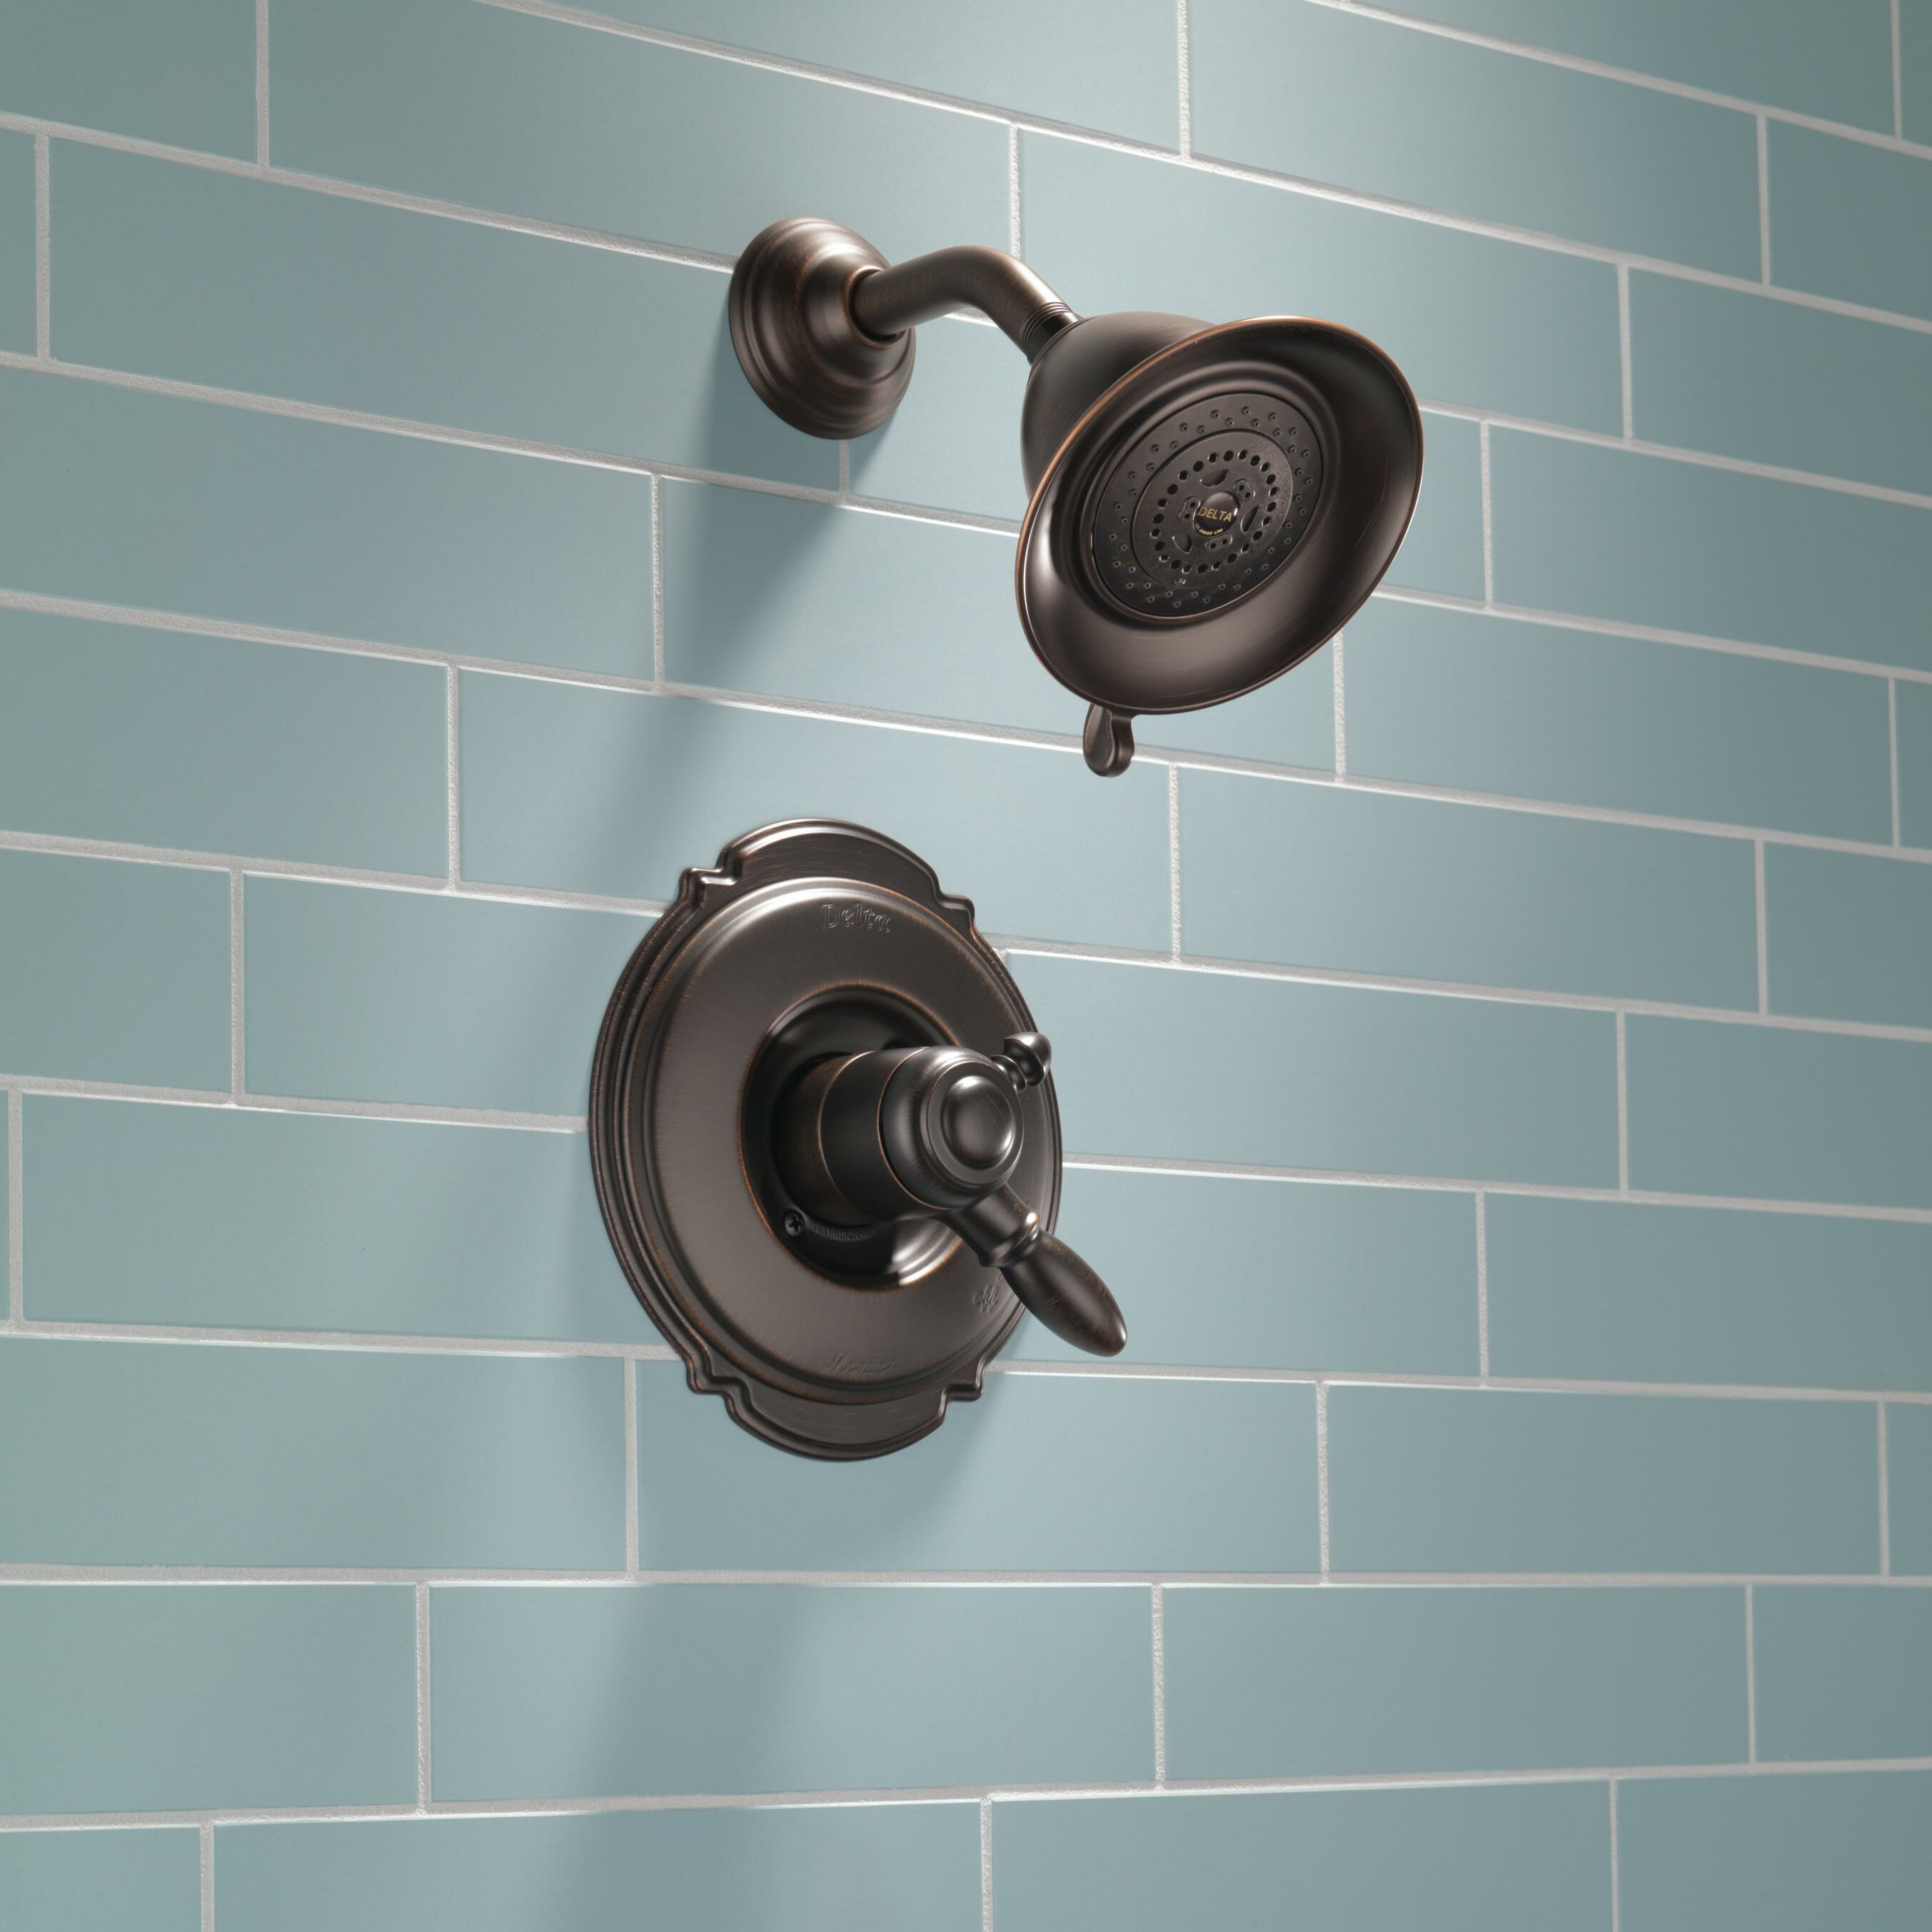 Delta Victorian Pressure Balanced Diverter Shower Faucet Trim With Lever Handles And H2okinetic Technology Reviews Wayfair